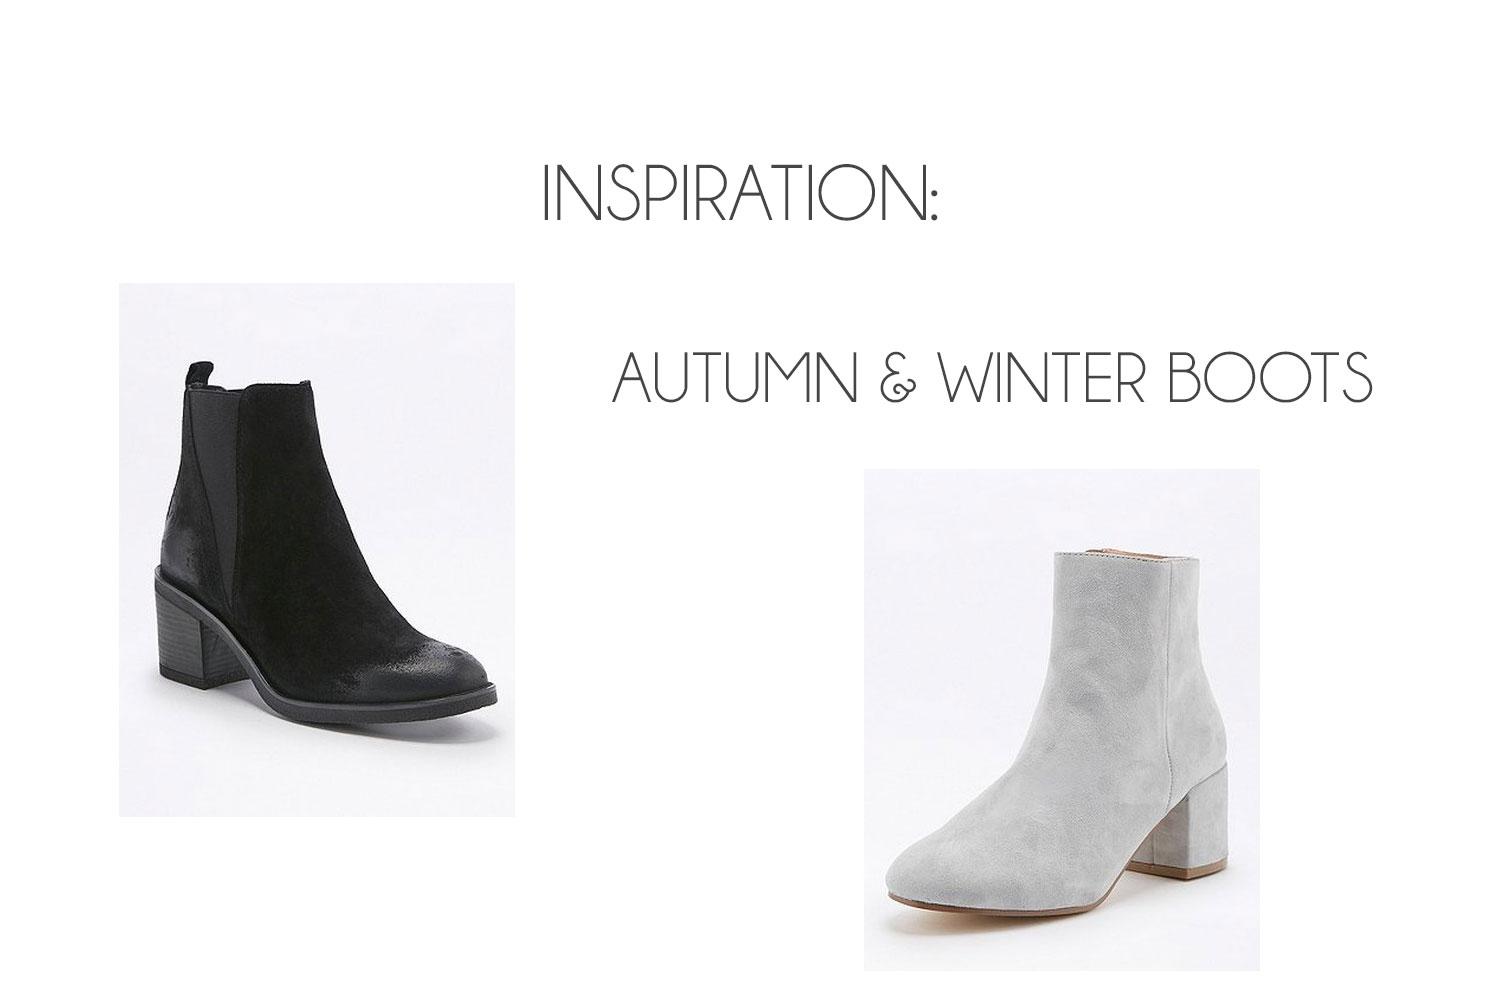 Food Guide New York #2: Donuts & anderer Süßkram - Autumn Winter Boots